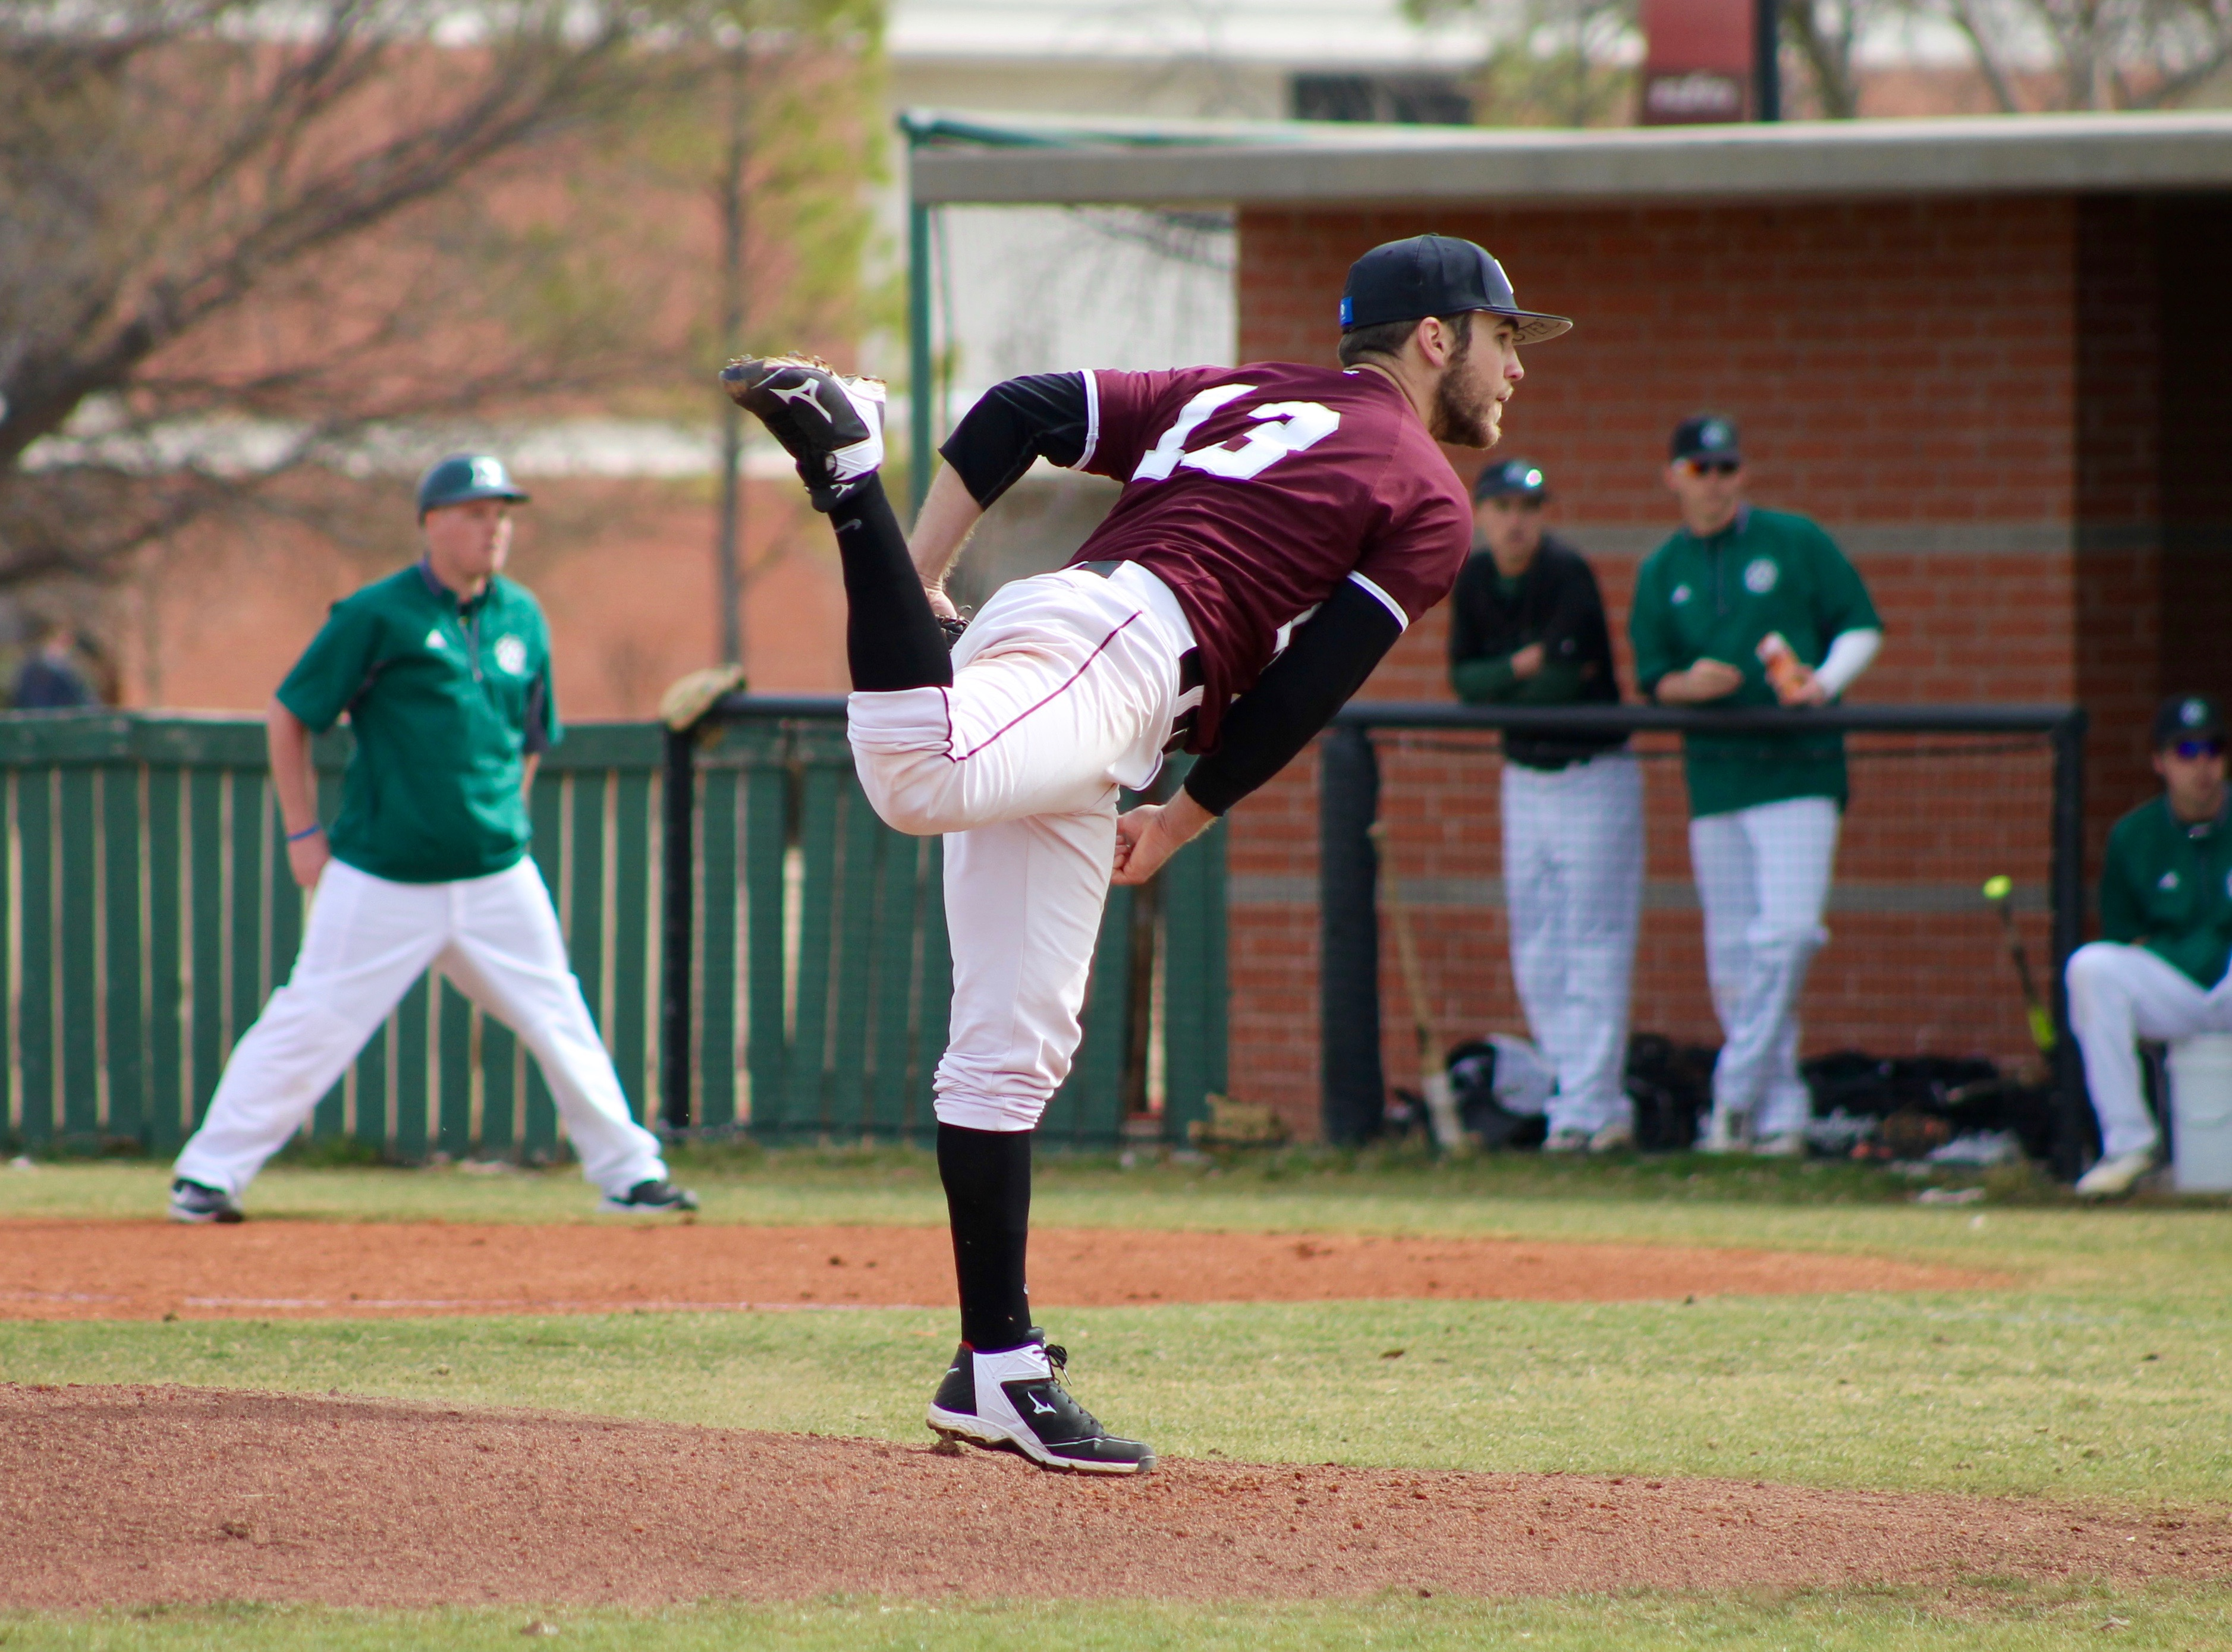 Oklahoma Christian baseball team finished 30-22 last spring. Photo by Allyson Hazelrigg.